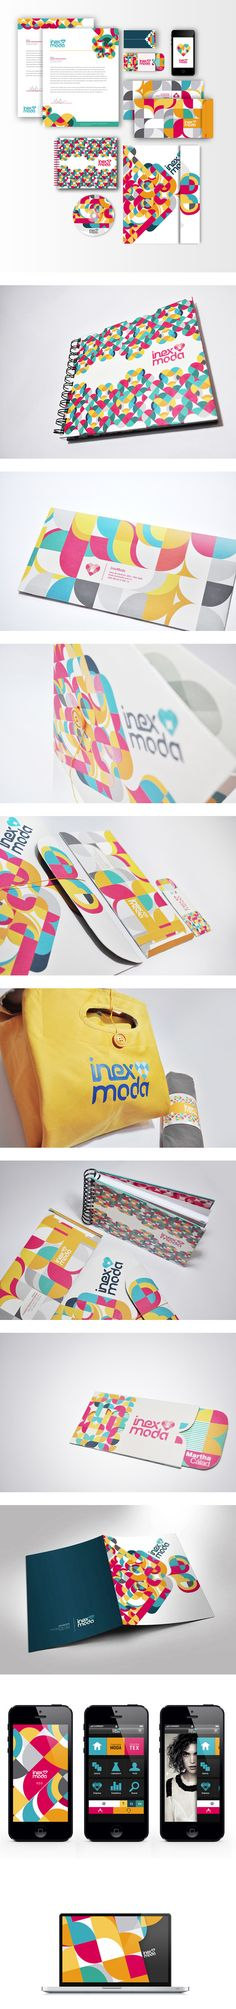 InexModa - branding redesign  colorful #identity #packaging #branding PD